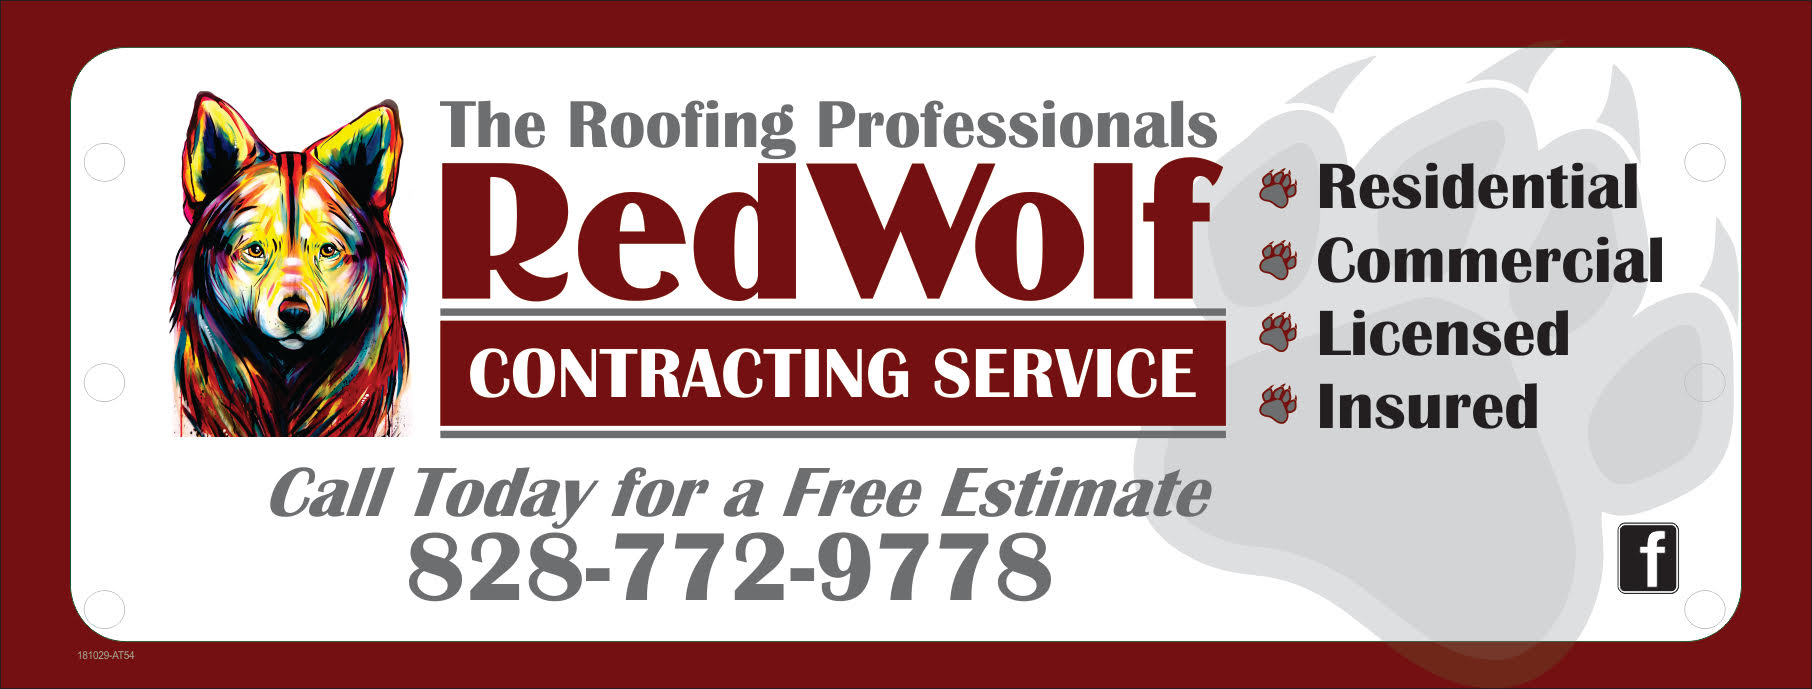 Do you have roof damage from recent storms or are in need of a new roof?  Matt RedWolf Contracting Services is the man to call!  With free evaluations and estimates, there's no reason to give him a call!  Call (828)772-9778 or visit their website  nc-roofers.com .